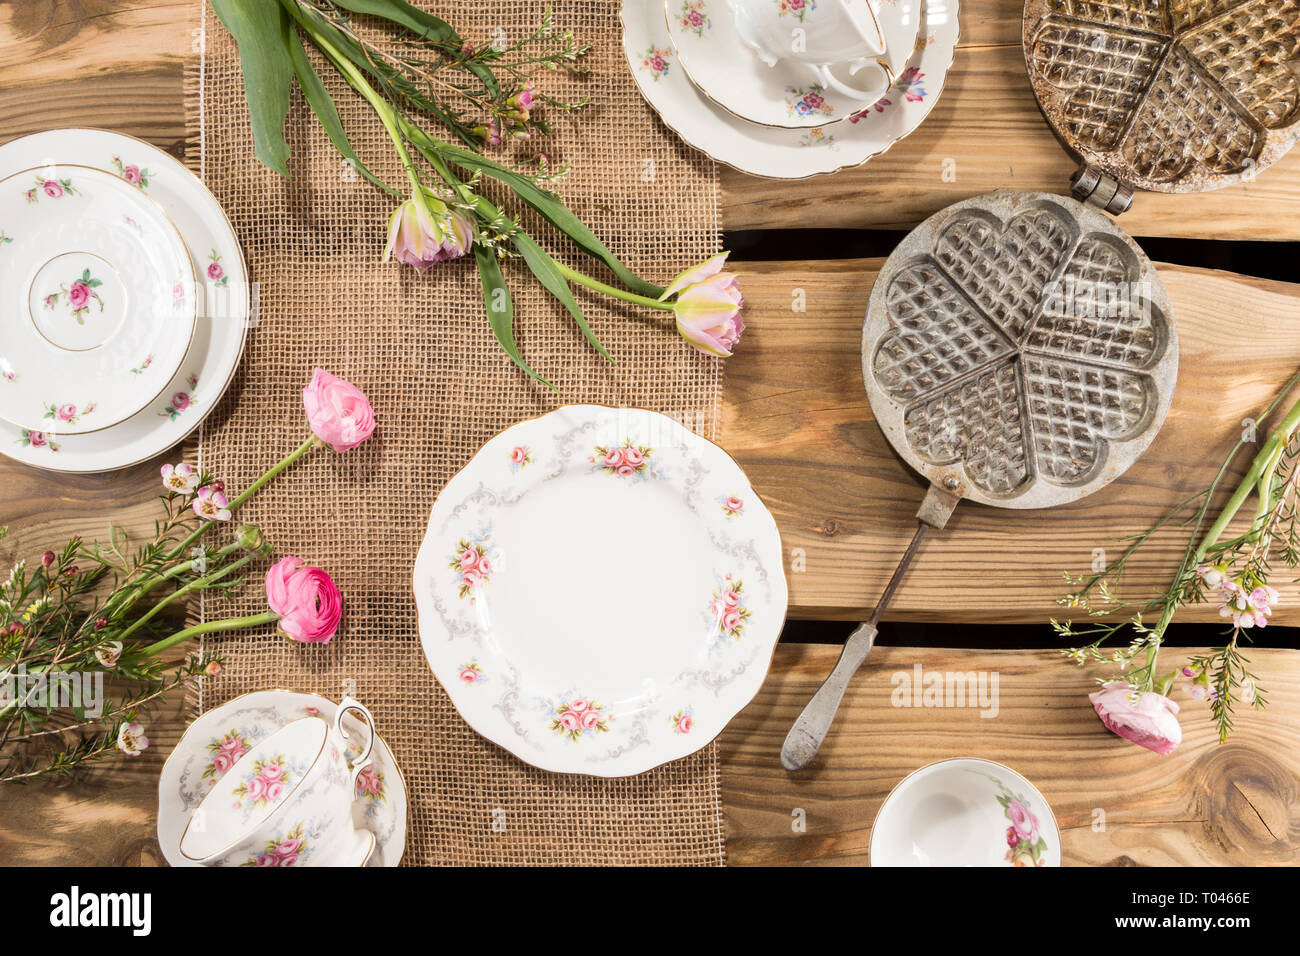 Old romantic porcelain, pink flowers and ancient waffle iron arranged on rustic wood planks. Shot from above, flat lay. Stock Photo